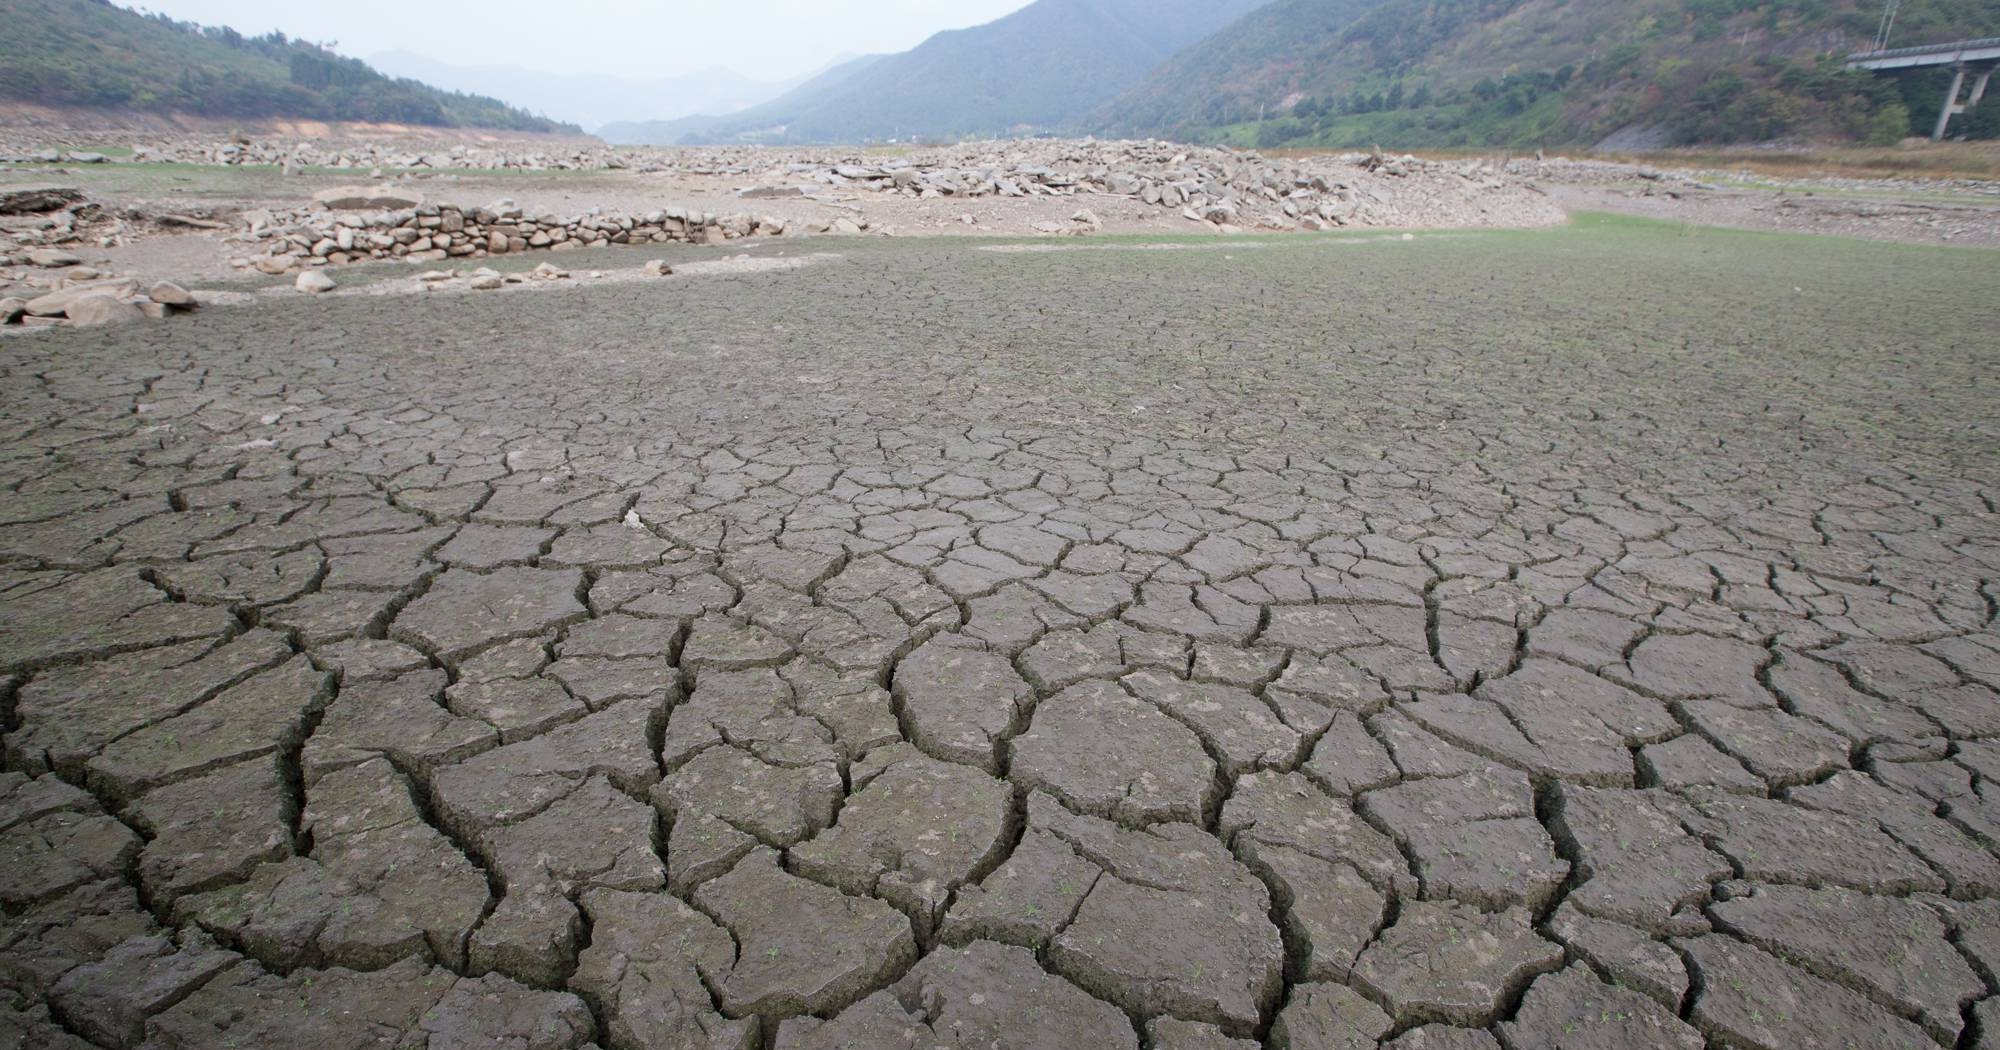 The worst drought hits the country heavily